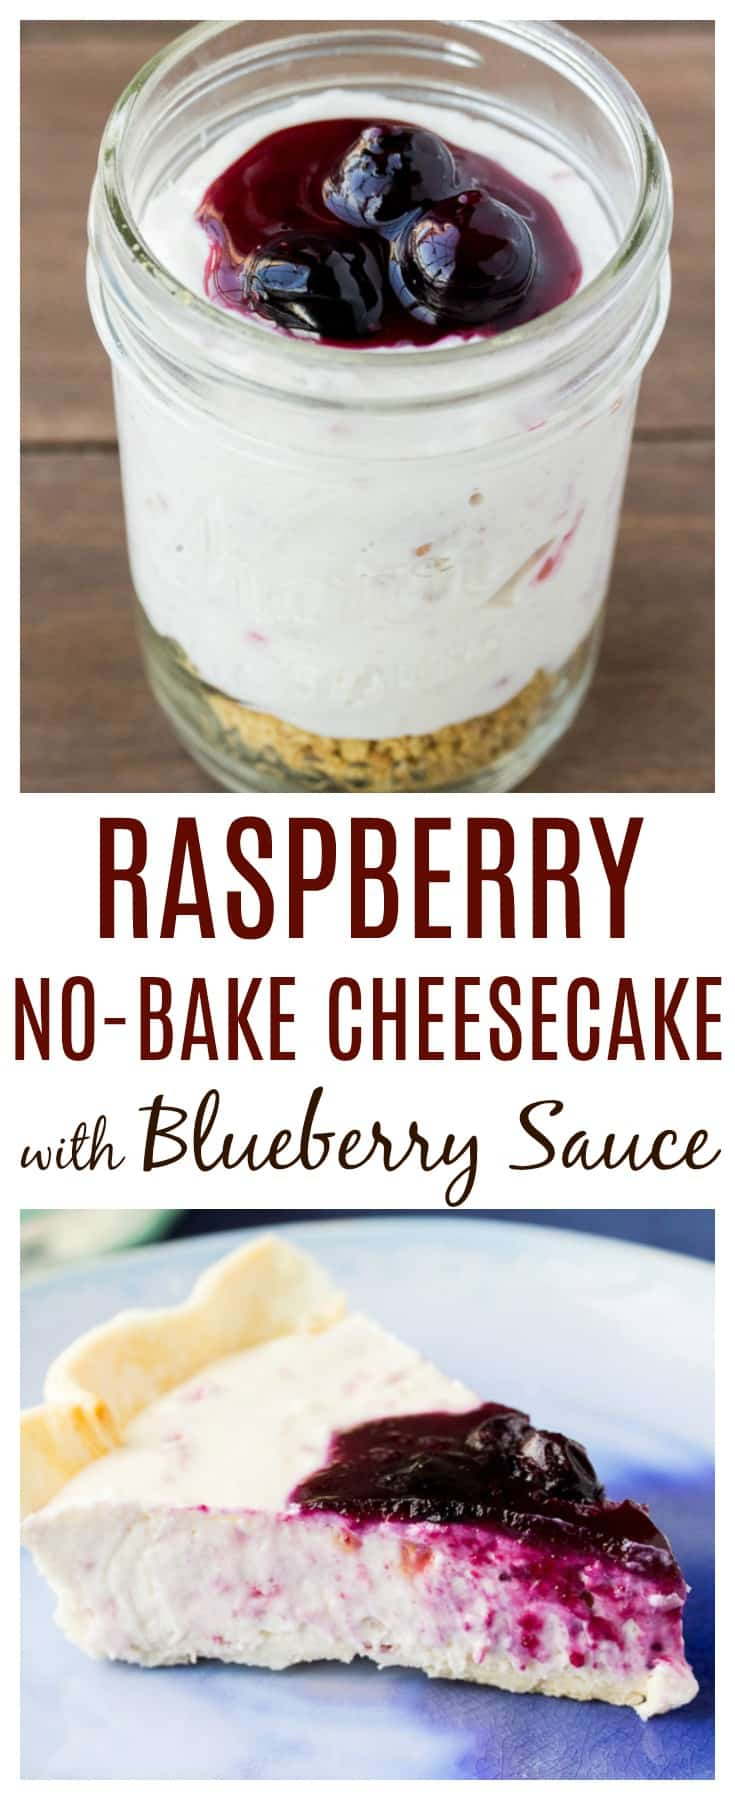 This Raspberry No-Bake Cheesecake recipe is the perfect summer dessert! Topped with Blueberry Sauce, it's also a great option for all of the red, white, and blue patriotic celebrations as well! | #dlbrecipes #cheesecake #summerdessert #raspberrycheesecake #nobakecheesecake